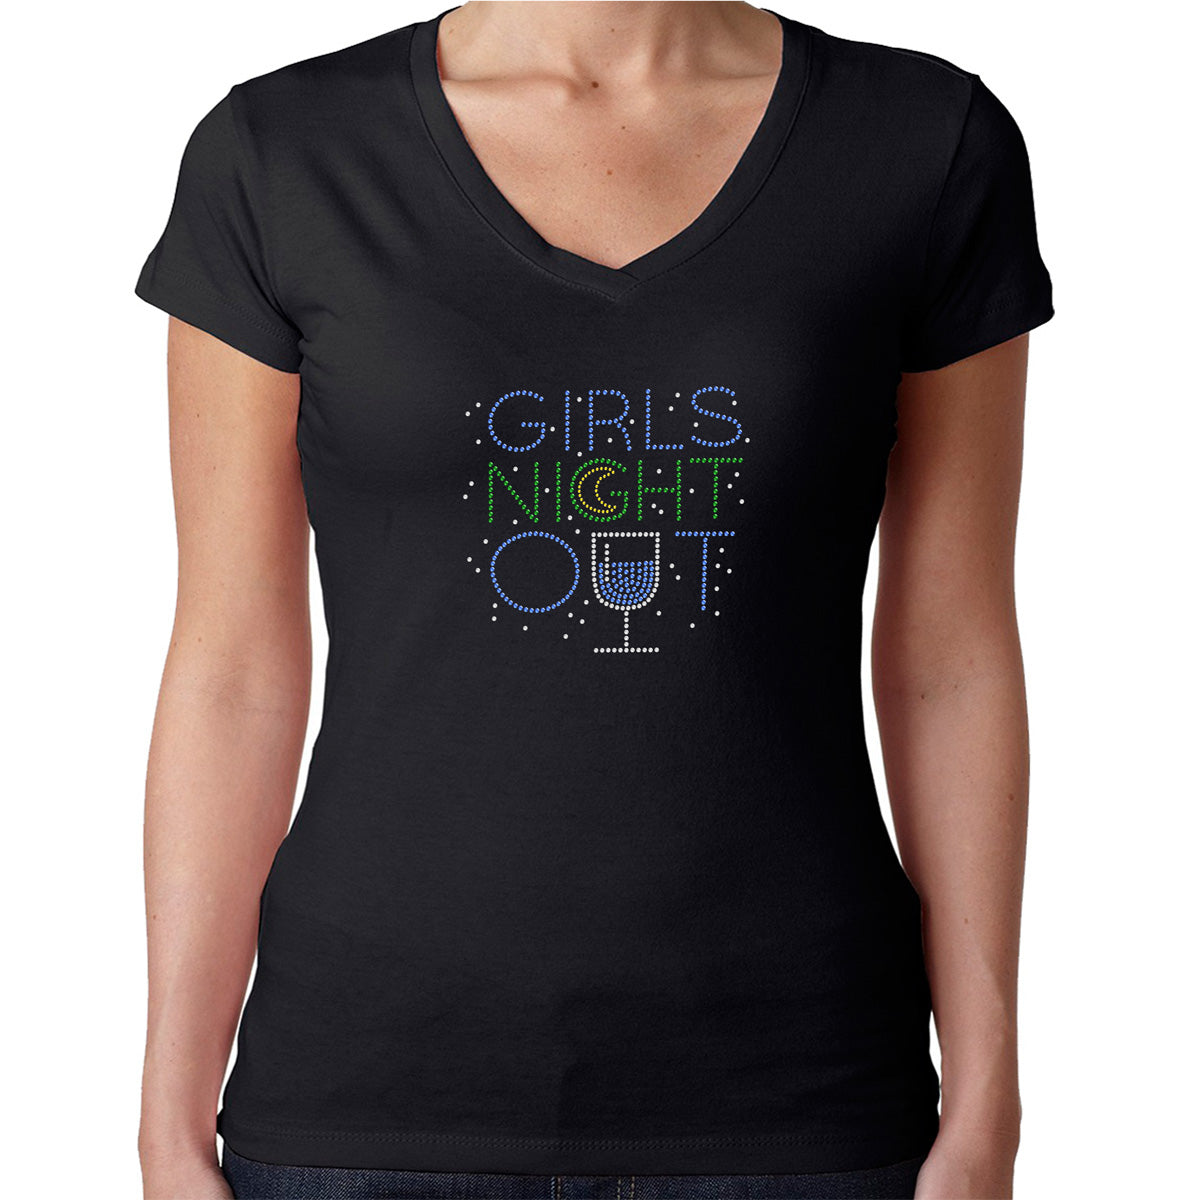 Womens T-Shirt Rhinestone Bling Black Fitted Tee Girls Night Out Moon Wine